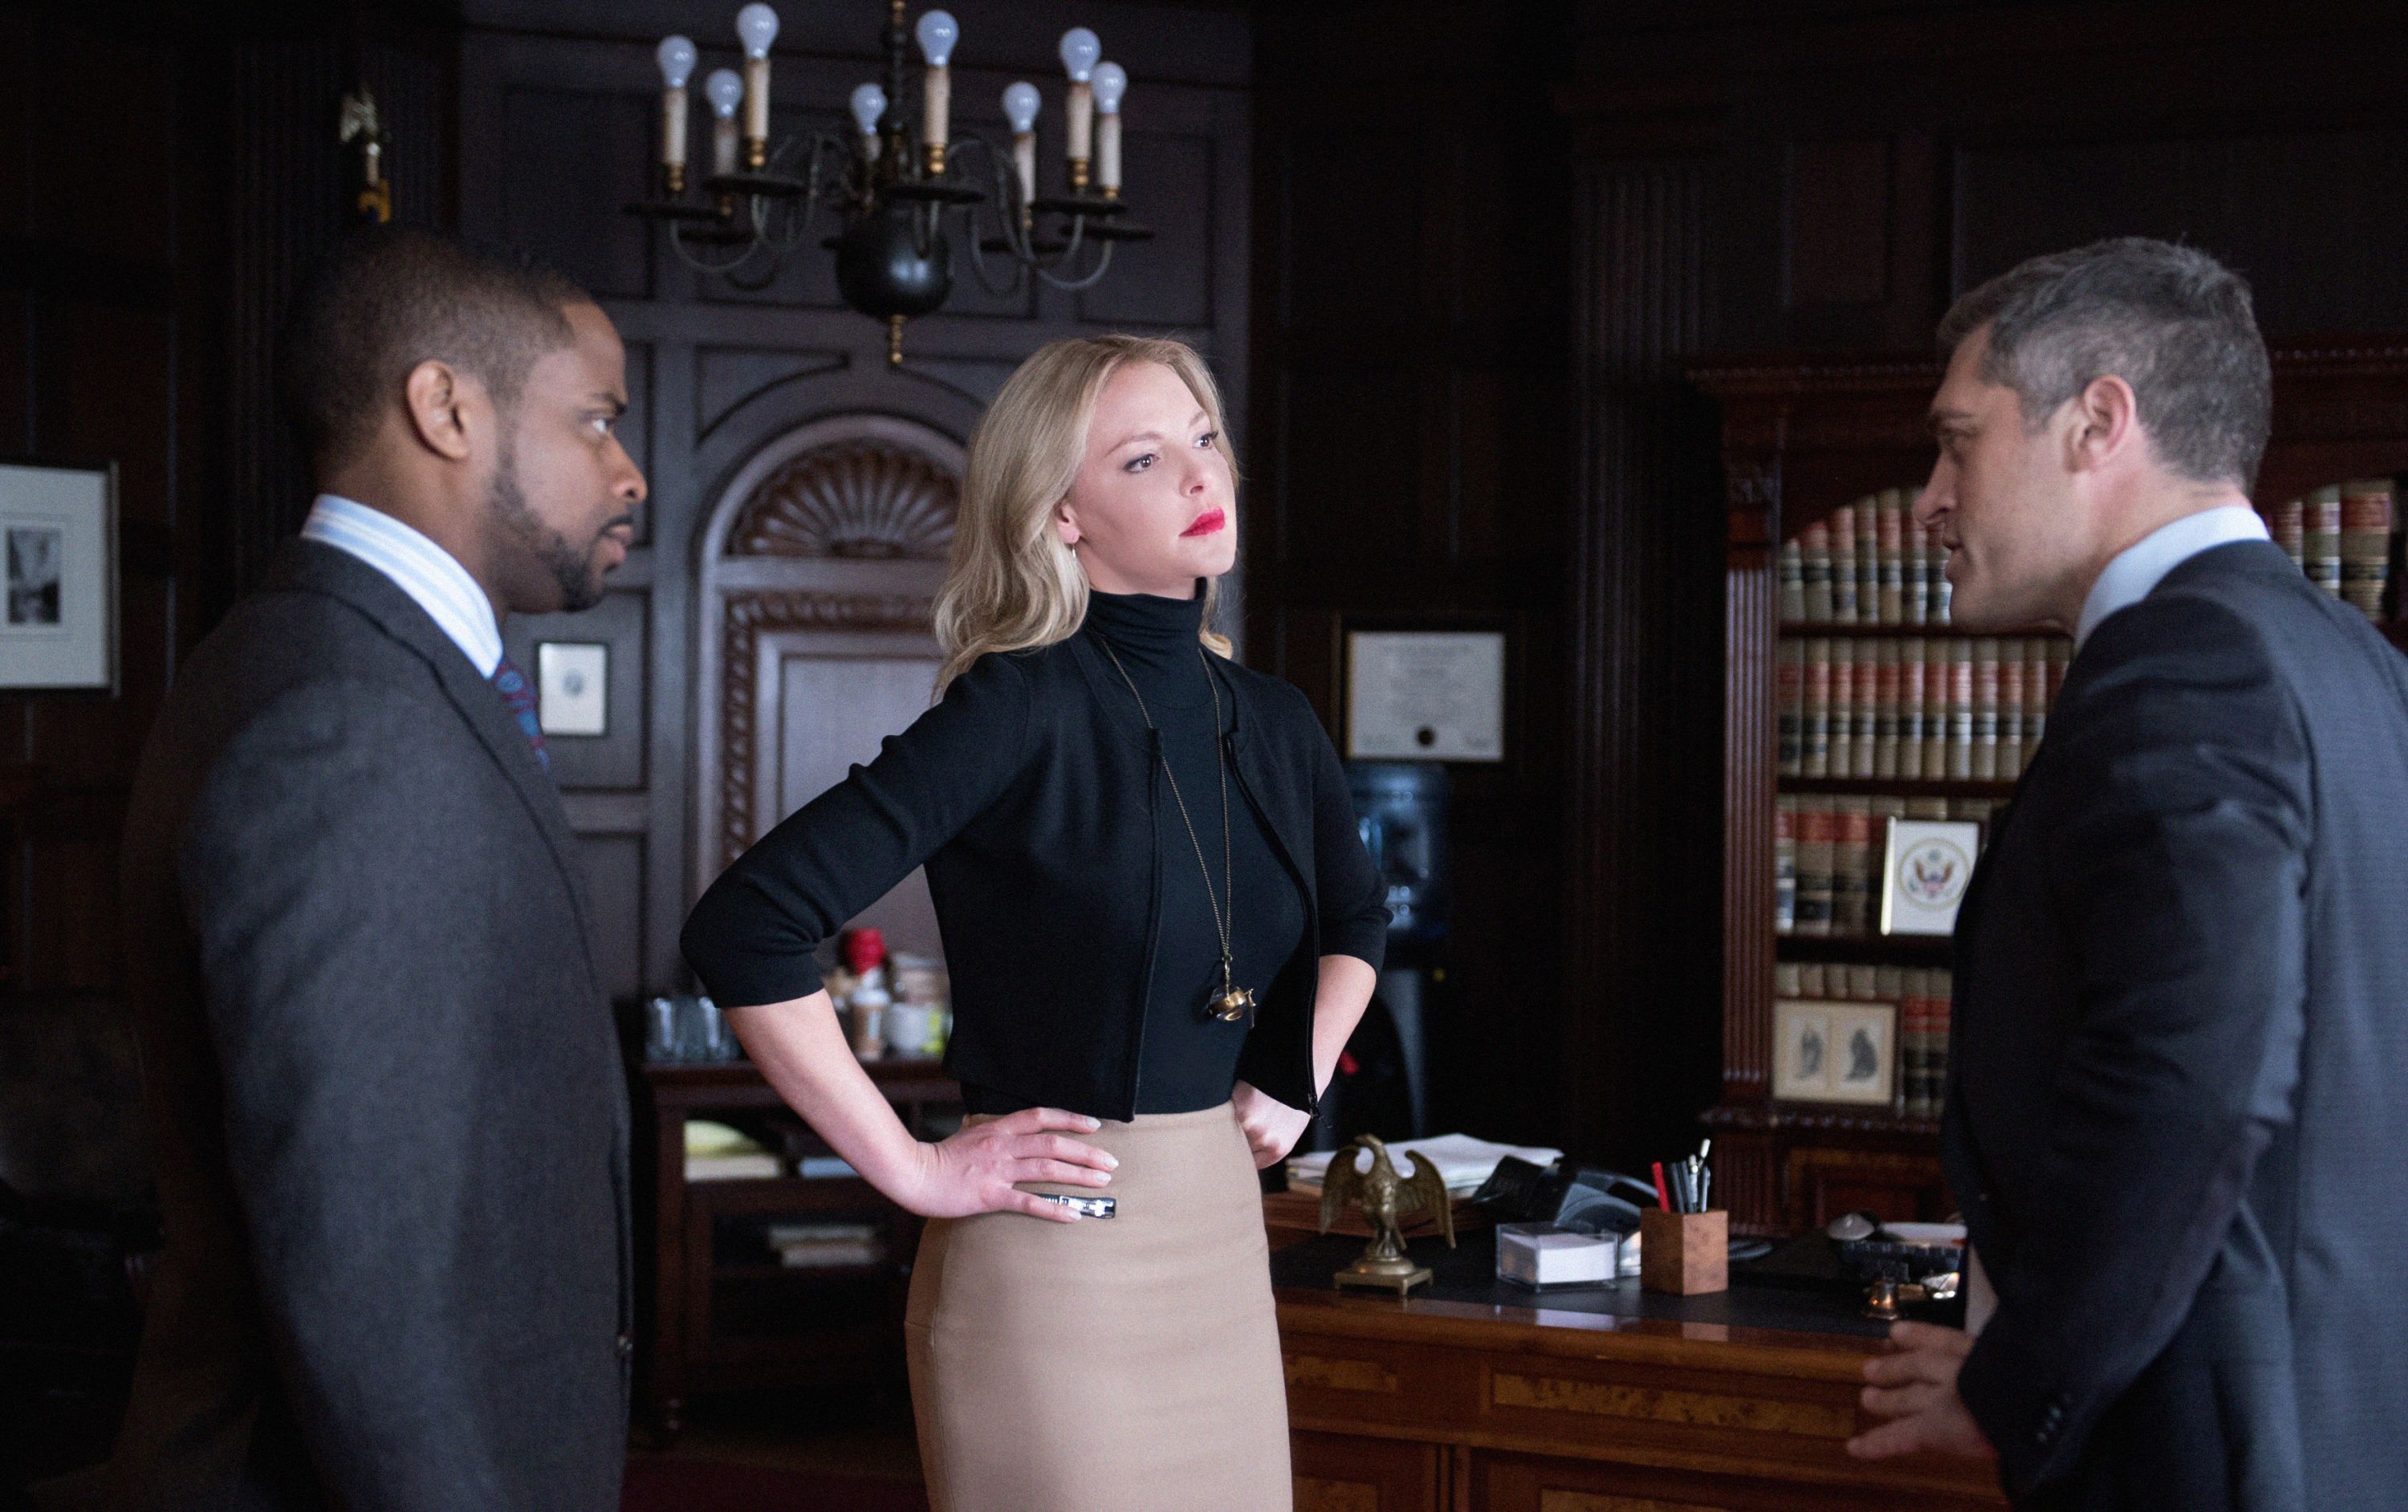 The new drama stars Katherine Heigl as a brilliant attorney at a boutique firm who starts to fall for her charismatic client, an altruistic pediatric surgeon recently accused of murdering his girlfriend 24 years ago.